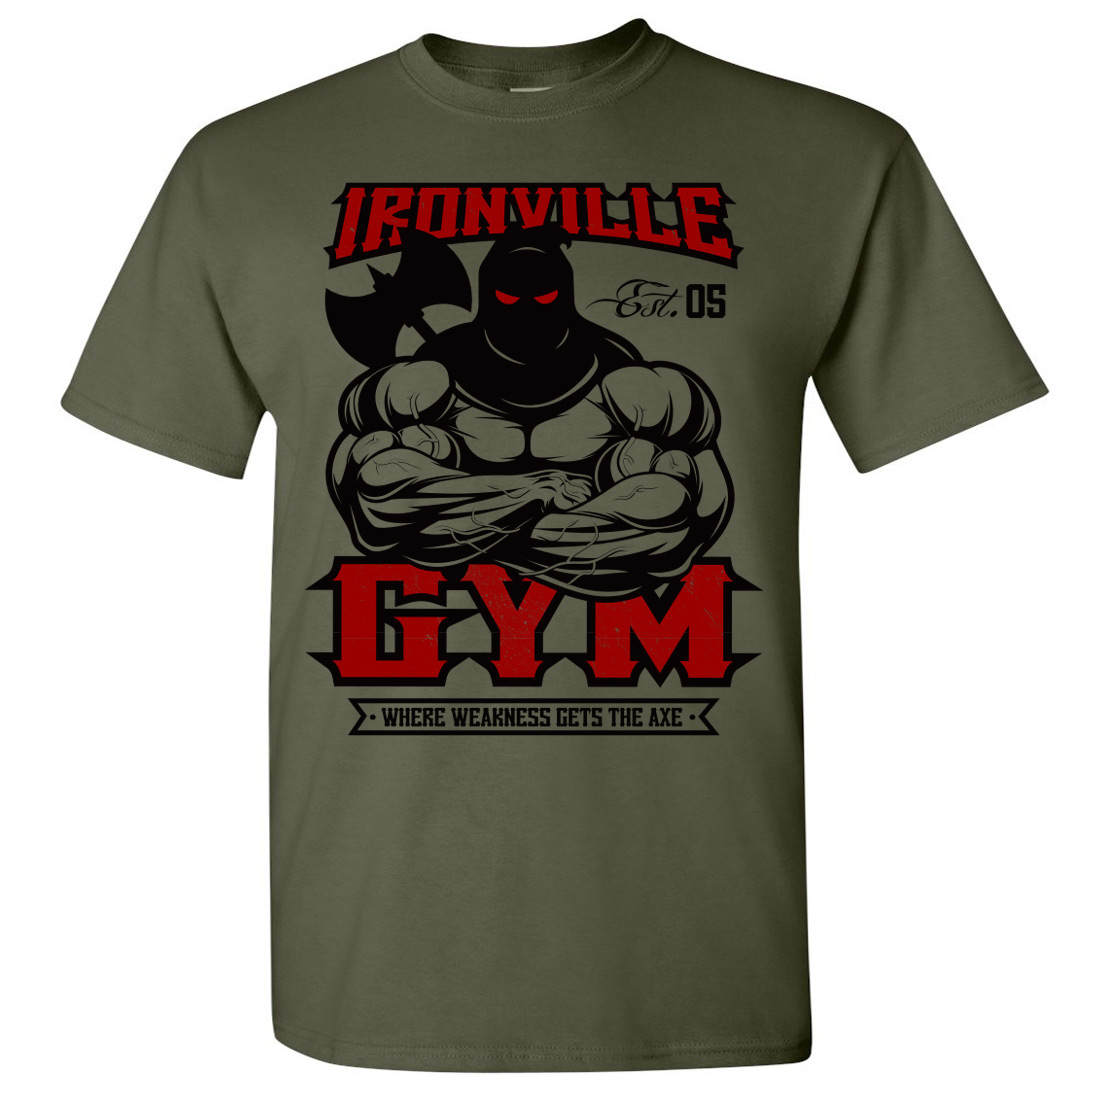 Ironville gym executioner axe powerlifting t shirt for Gym shirt t shirt